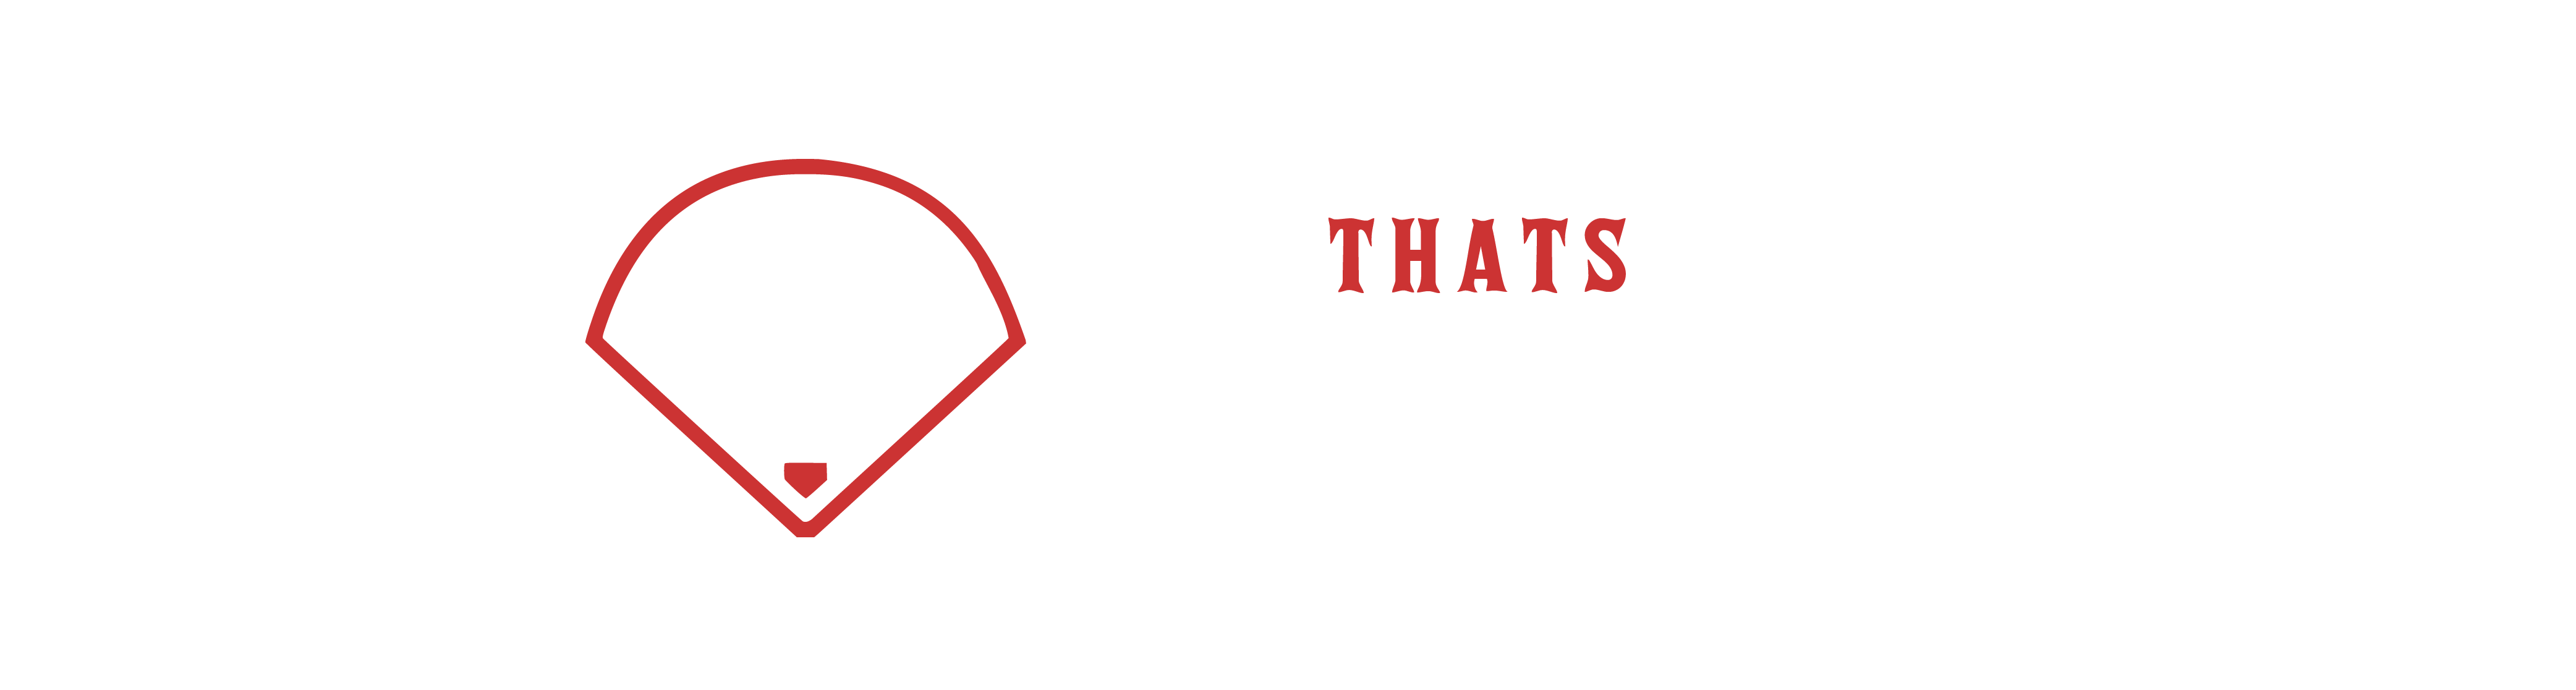 ThatsBaseball.com MLB The Show 2020 League